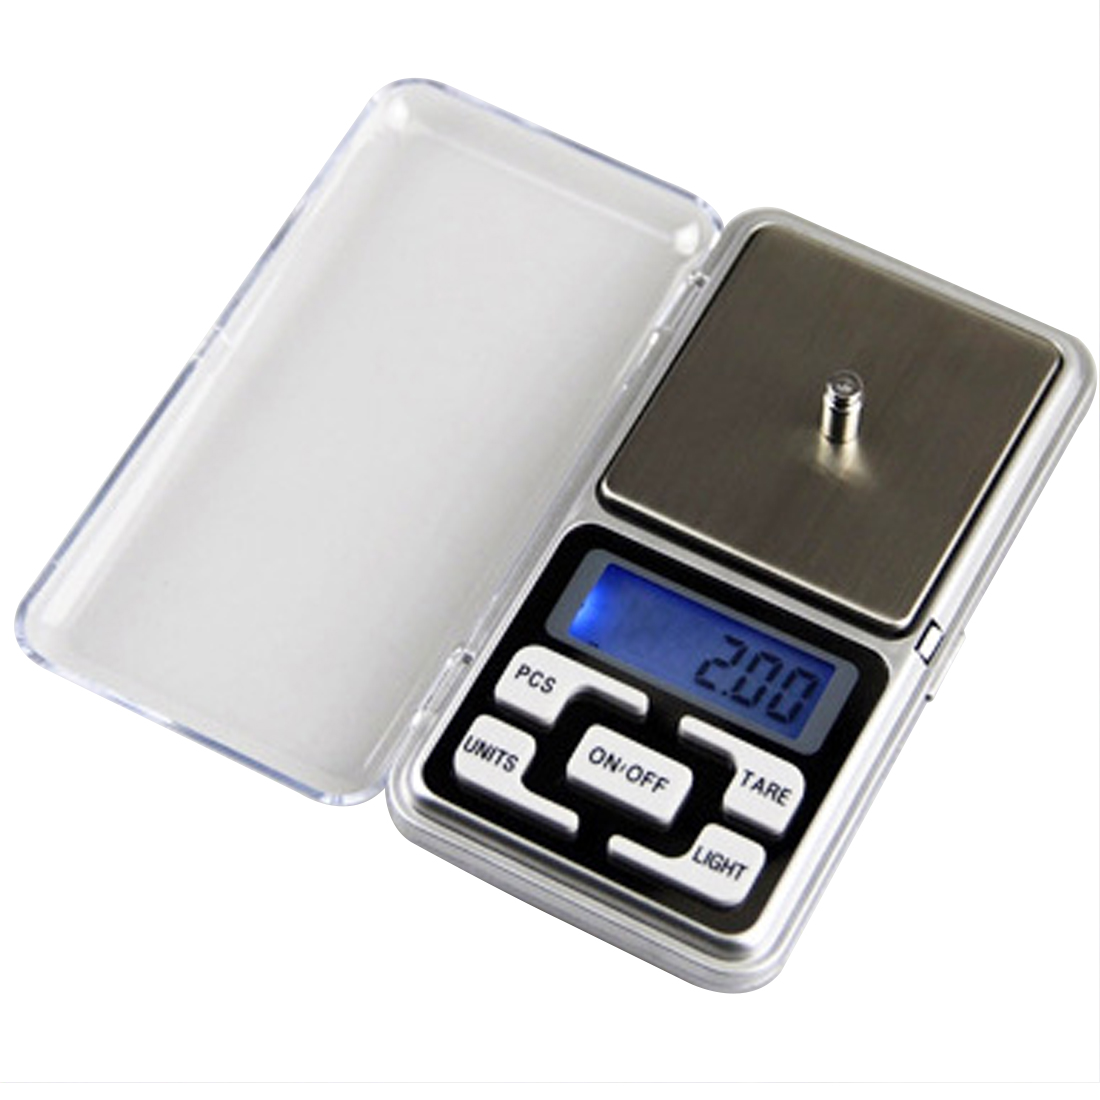 Mini Precision Digital Scales 200g/0.01g For Gold Bijoux Sterling Silver Scale Jewelry 0.01 Weight Electronic Scales high quality precise jewelry scale pocket mini 500g digital electronic balance brand weighing scales kitchen scales bs